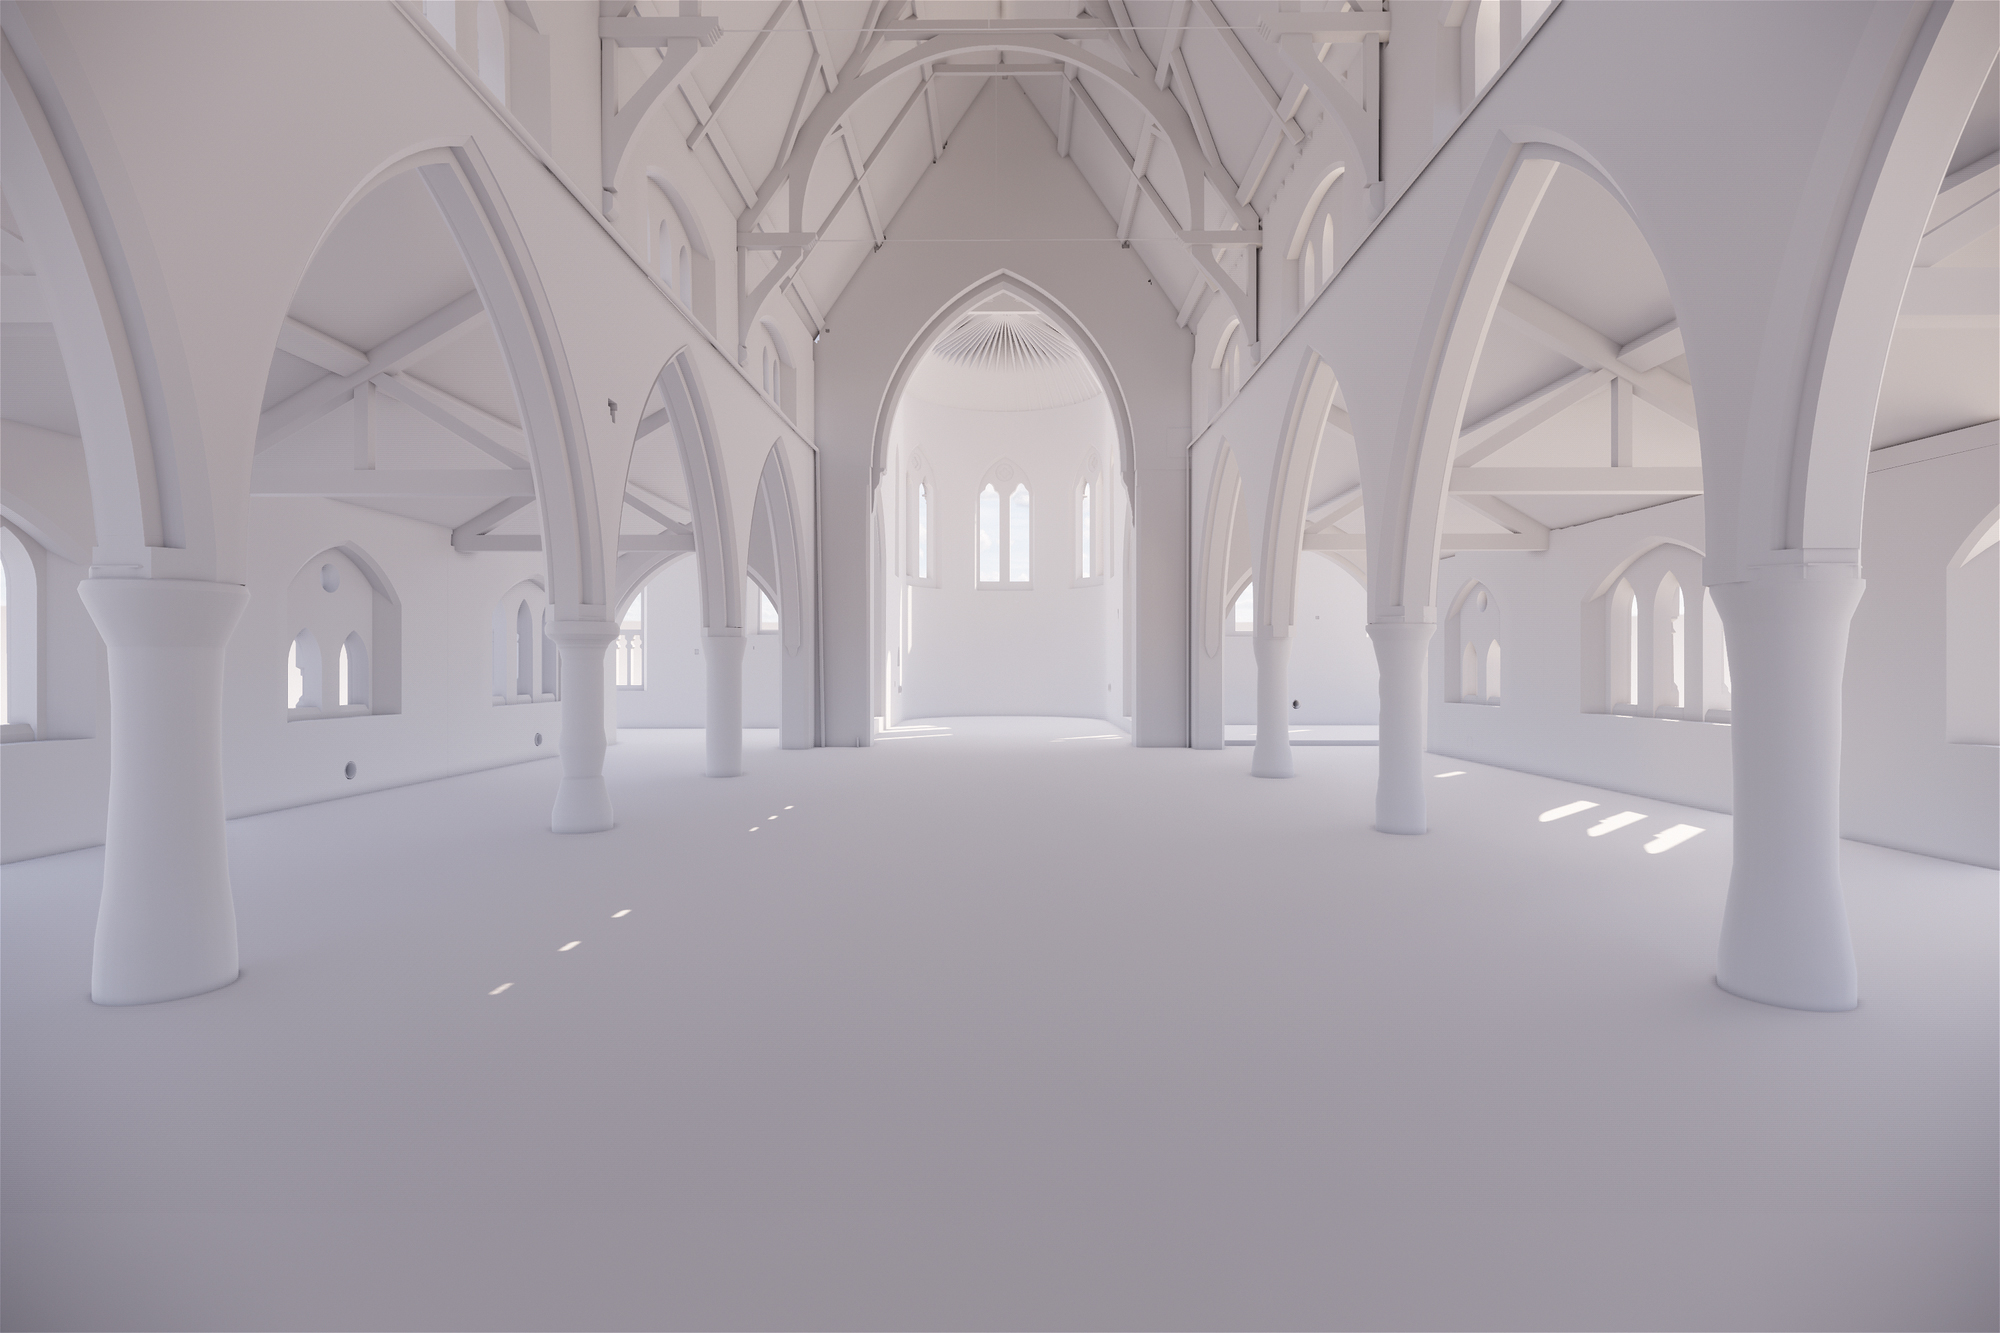 What are the benefits of using VR in architecture?